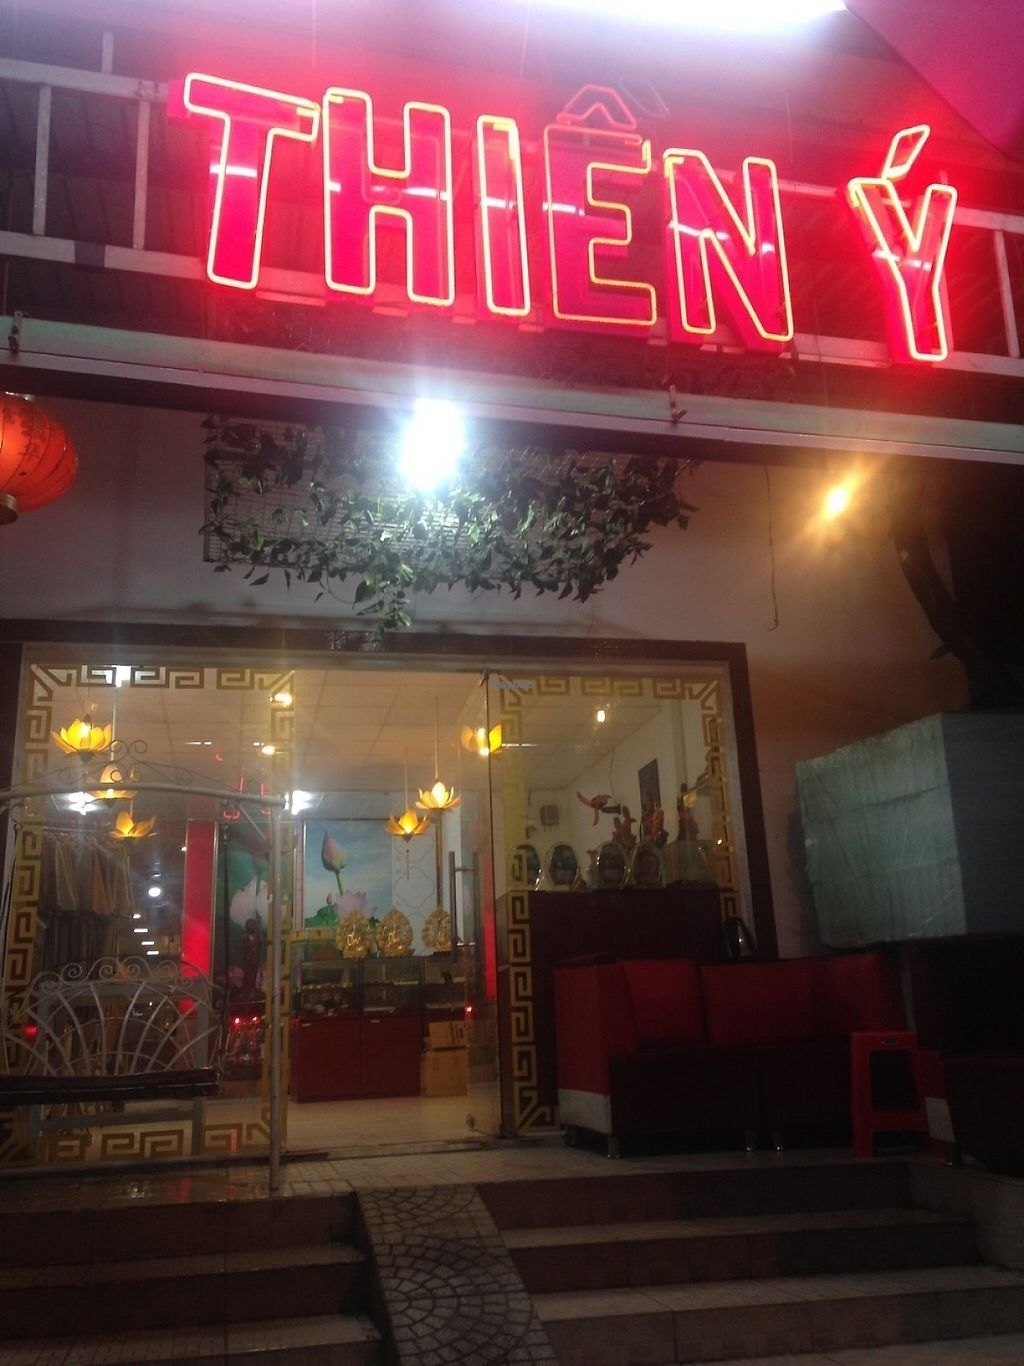 """Photo of Thien Y  by <a href=""""/members/profile/harryang"""">harryang</a> <br/>Thien Y <br/> April 1, 2017  - <a href='/contact/abuse/image/45027/243566'>Report</a>"""